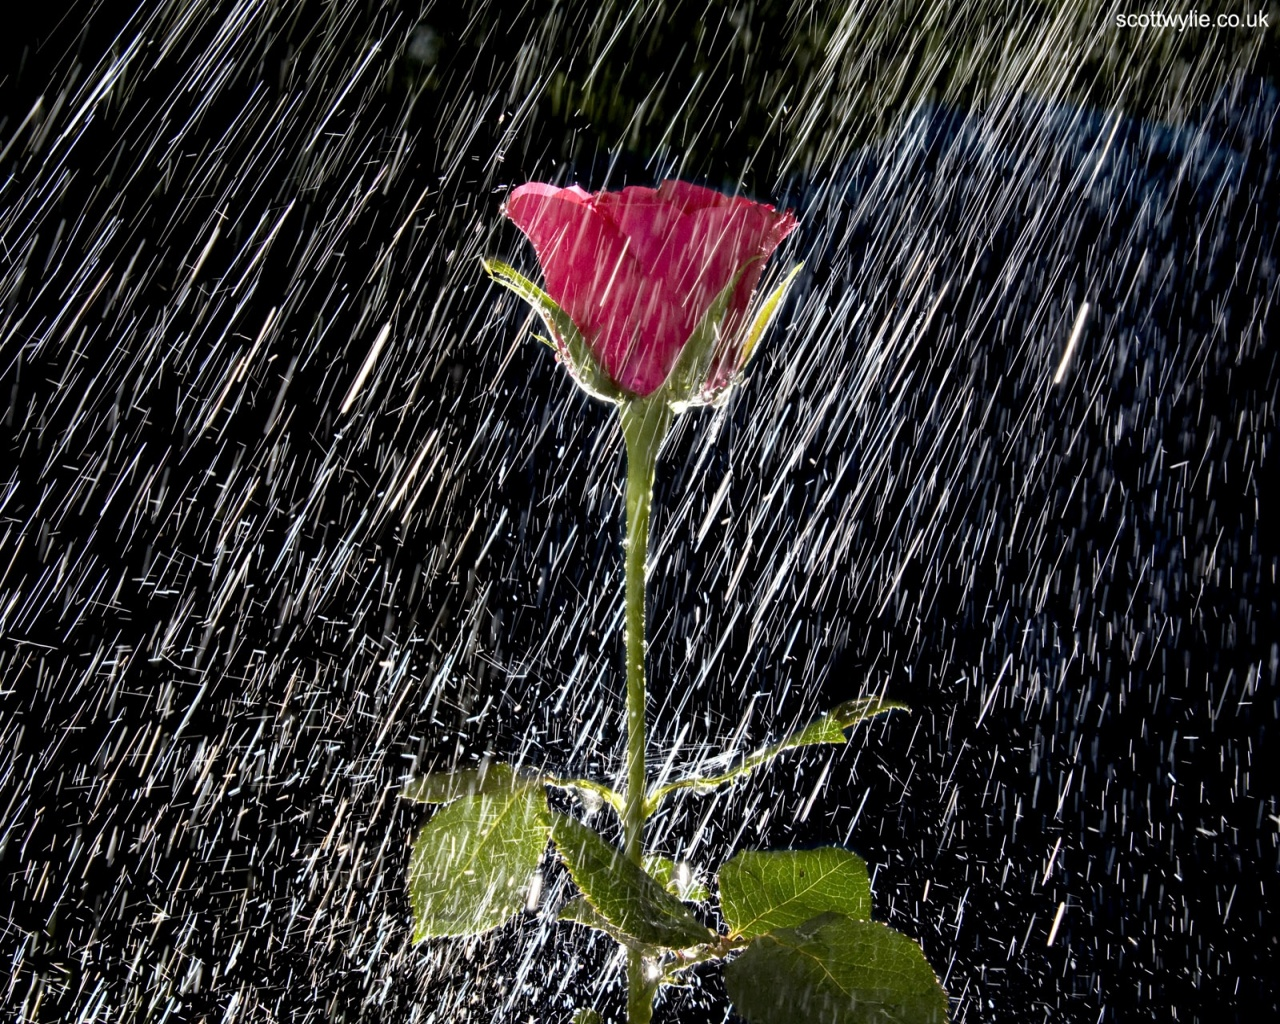 1280x1024 rose and water spray desktop pc and mac wallpaper